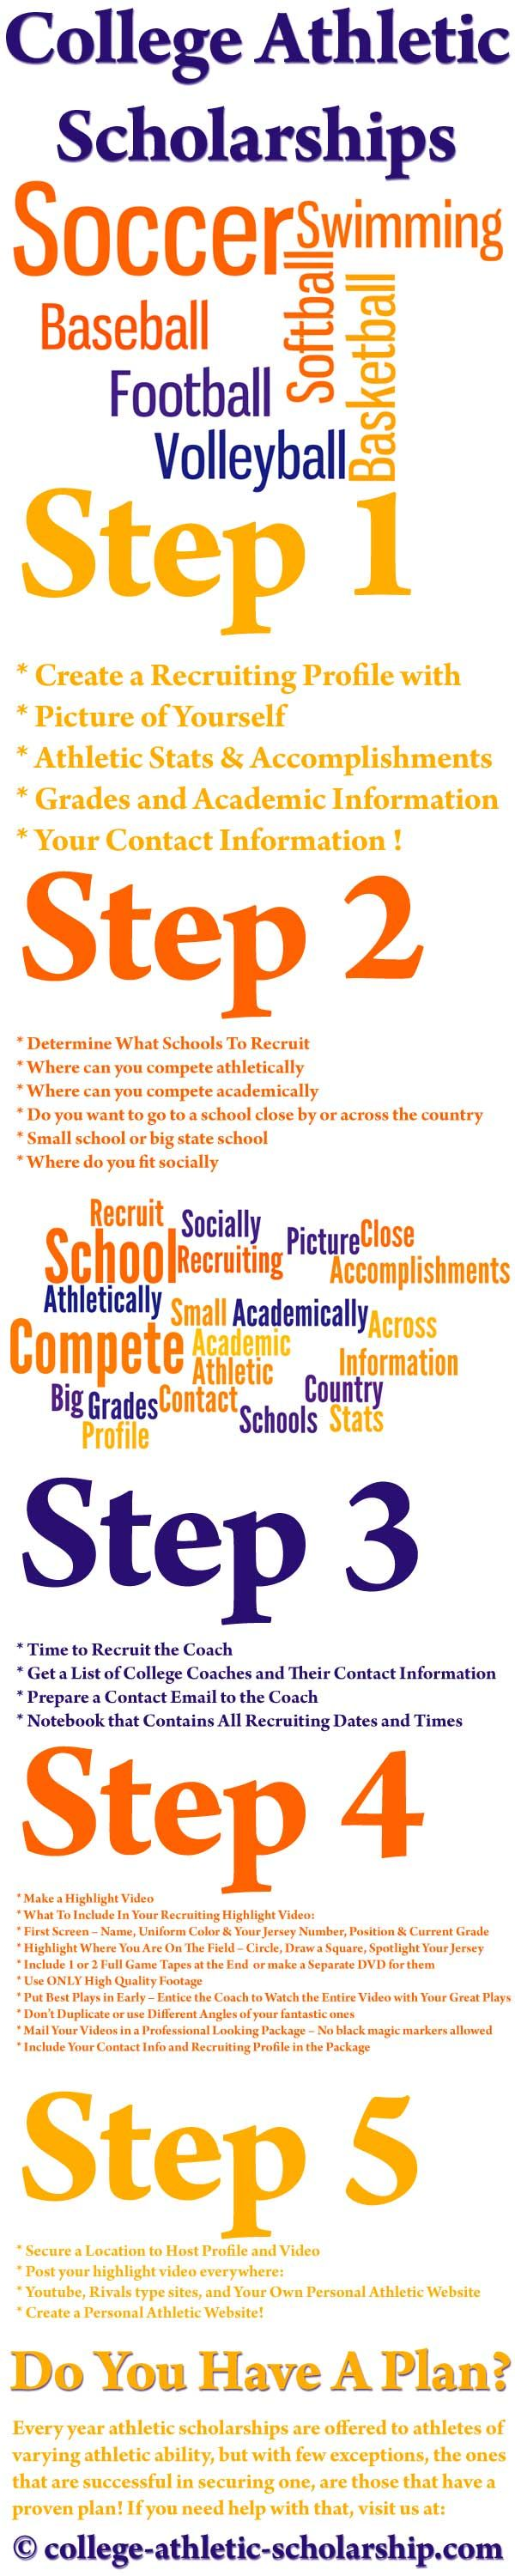 Steps to a college athletic scholarship